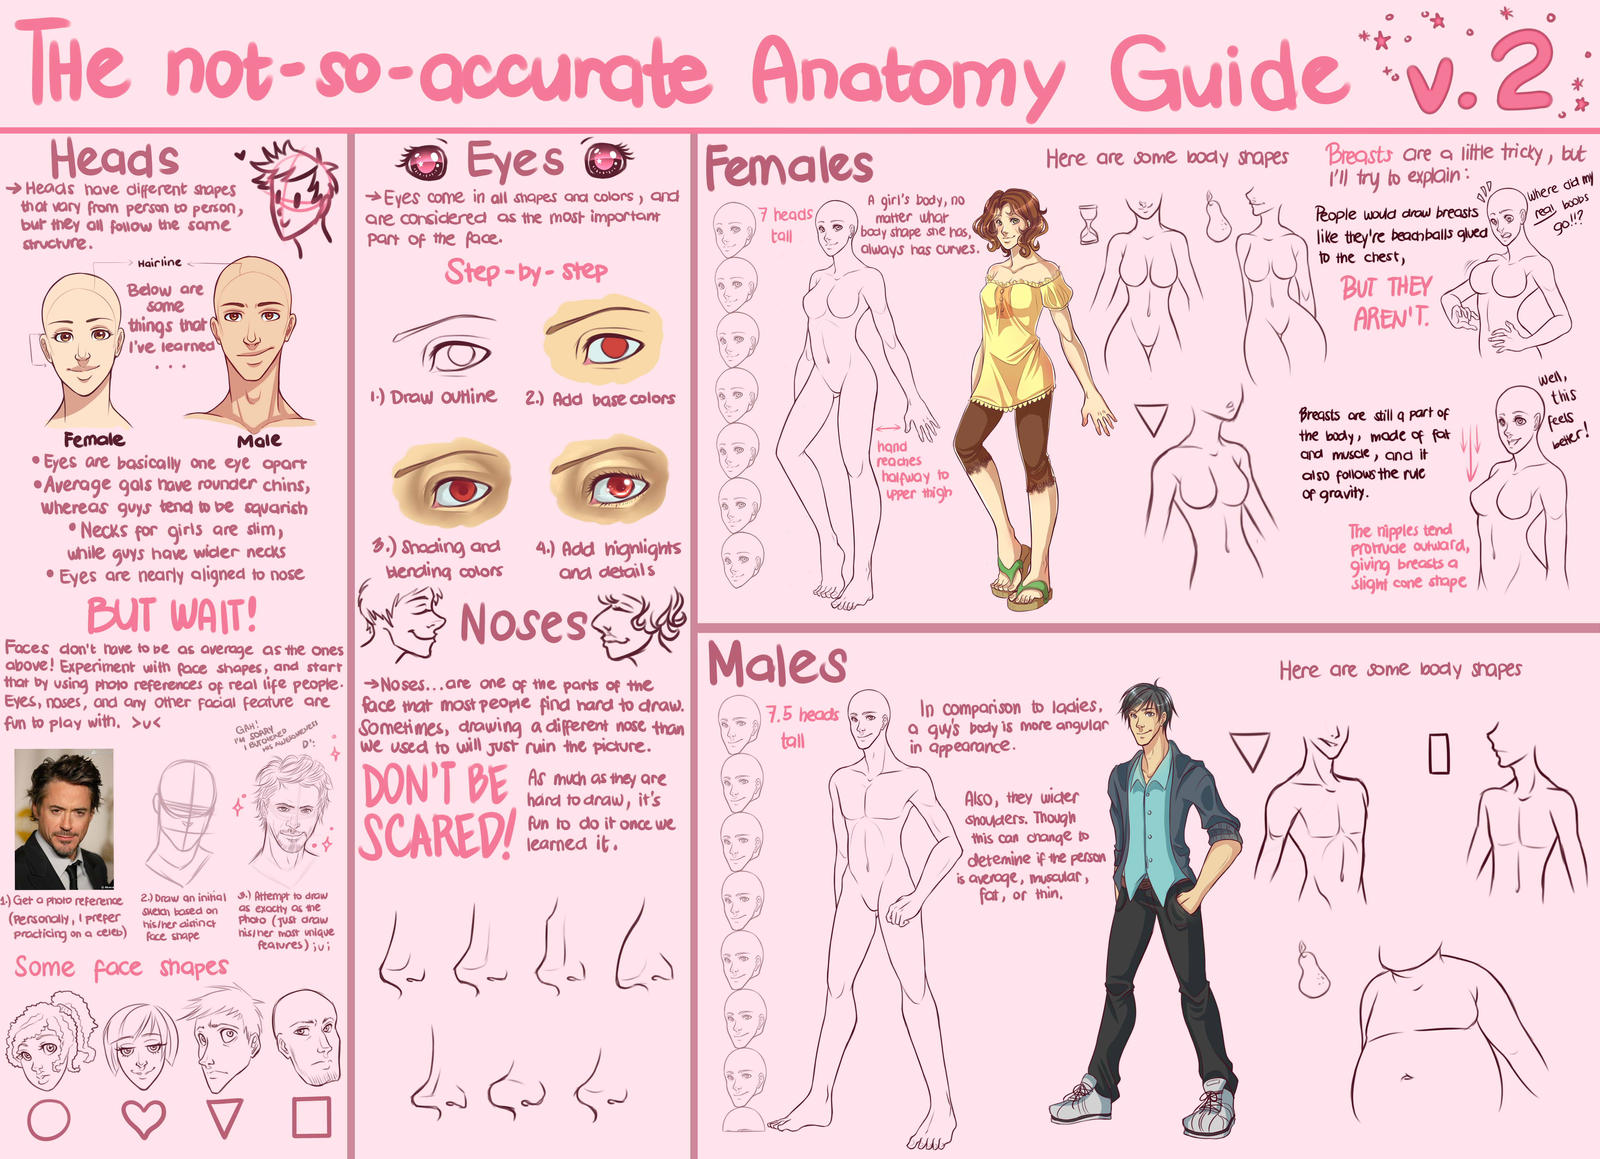 The Not-So-Accurate Anatomy Guide v.2 by stardazzle